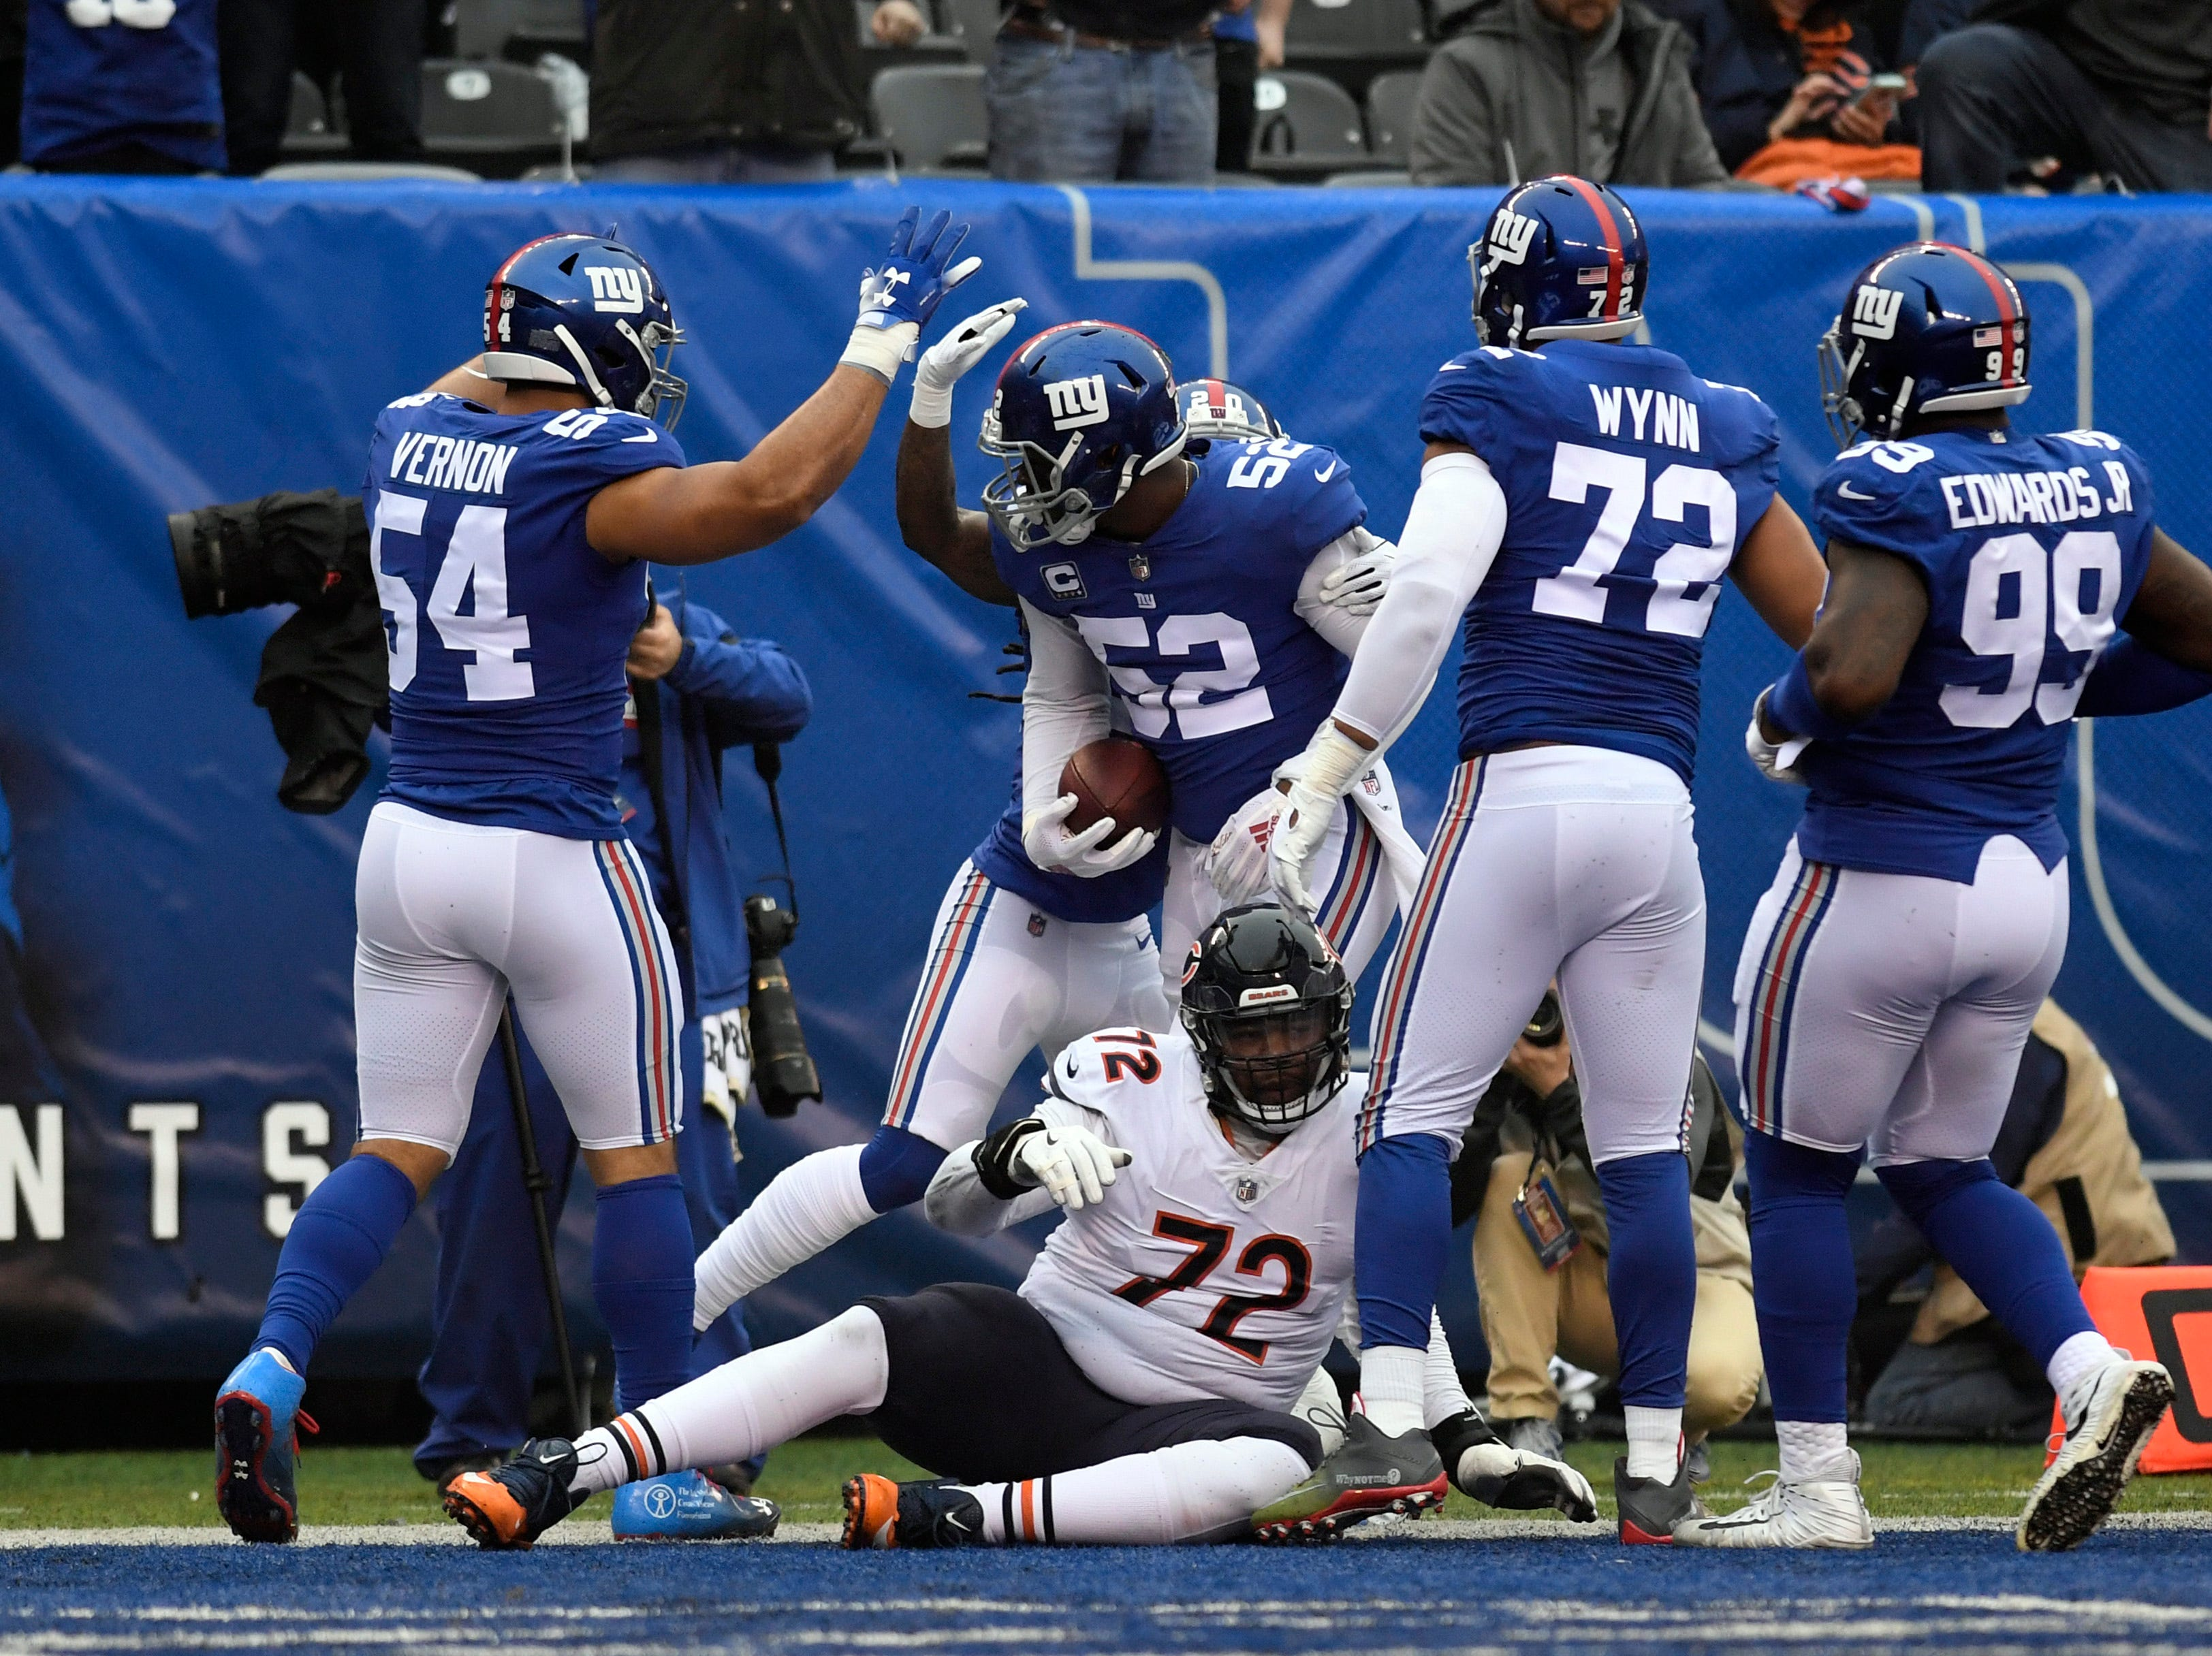 New York Giants linebacker Alec Ogletree (52) celebrates an interception returned for a touchdown in the first quarter. The New York Giants face the Chicago Bears on Sunday, Dec. 2, 2018, in East Rutherford.